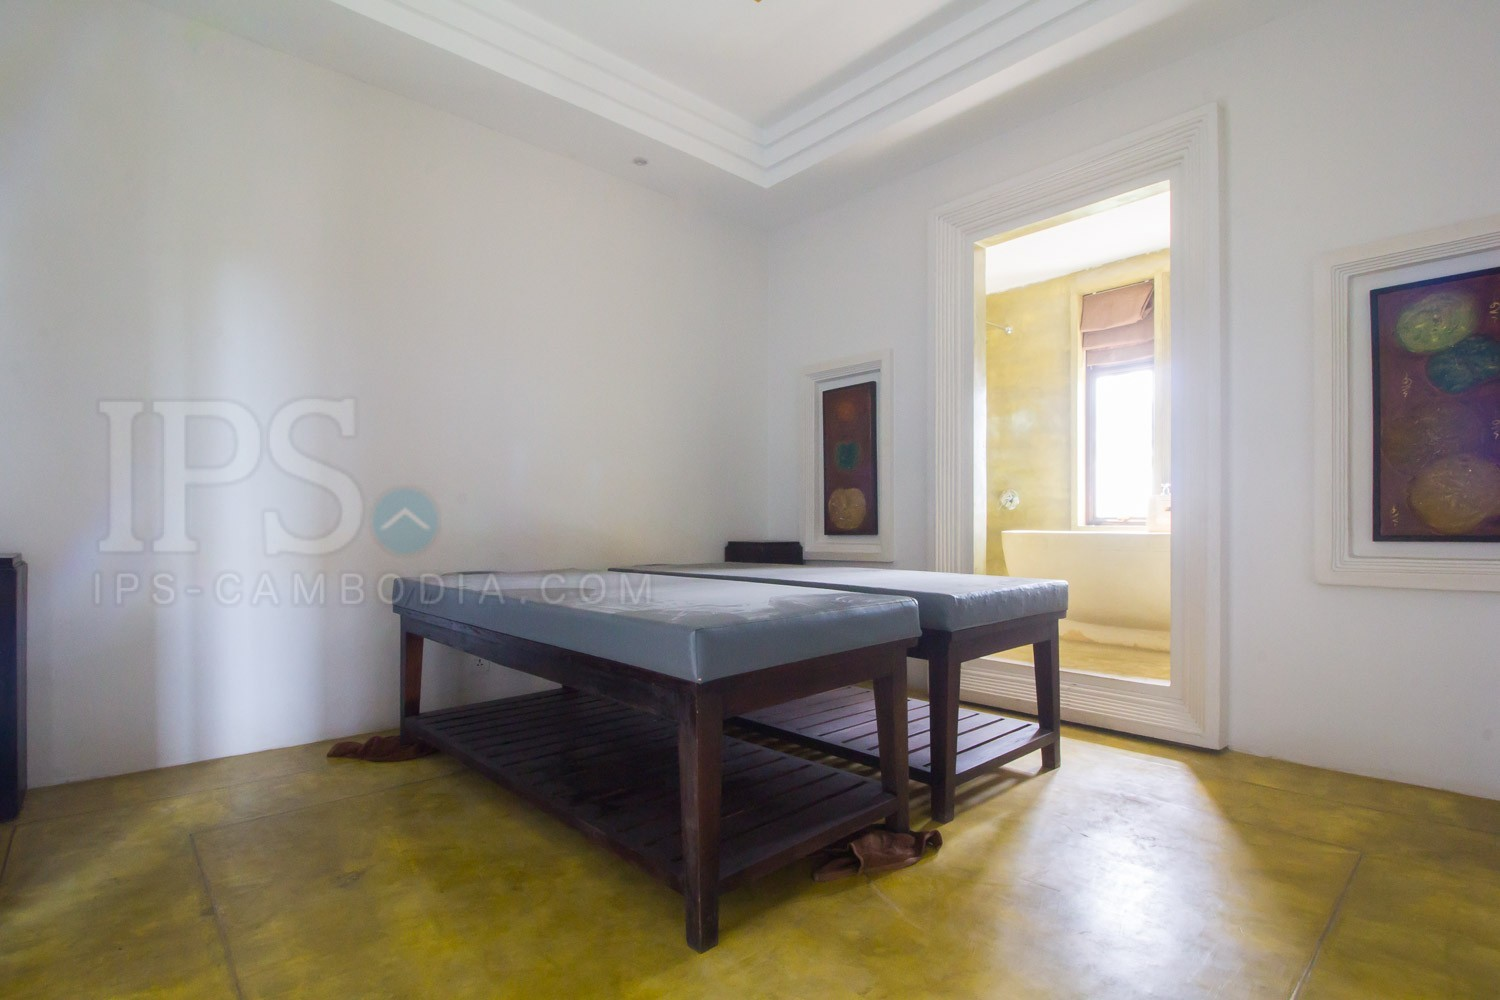 16 Room Hotel  Spa For Rent - Night Market Area, Siem Reap